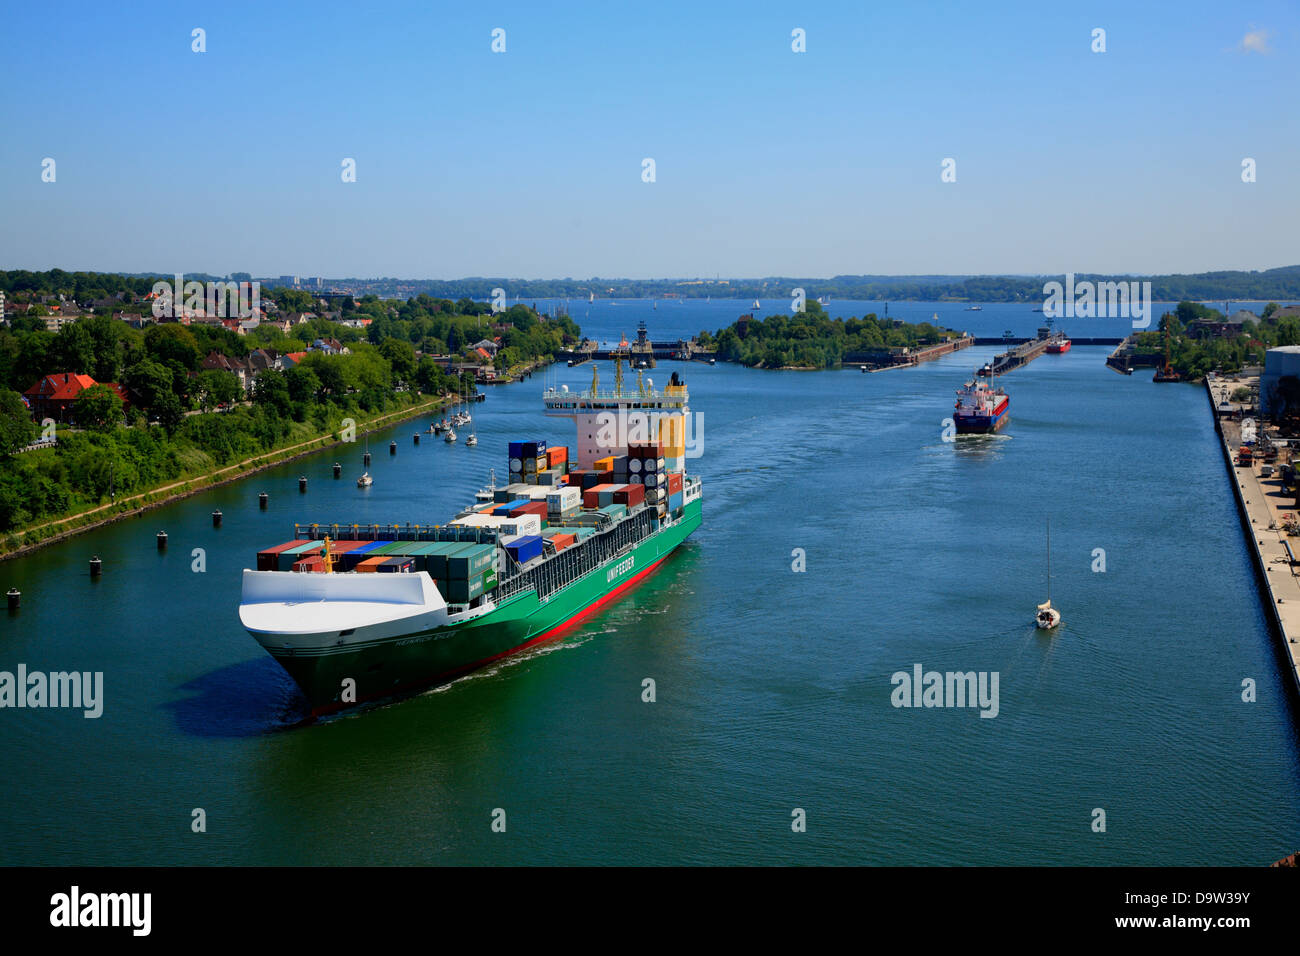 Container ship on Kiel Canal at Kiel-Holtenau Lock, Kiel, Schleswig-Holstein, Germany, Europe - Stock Image